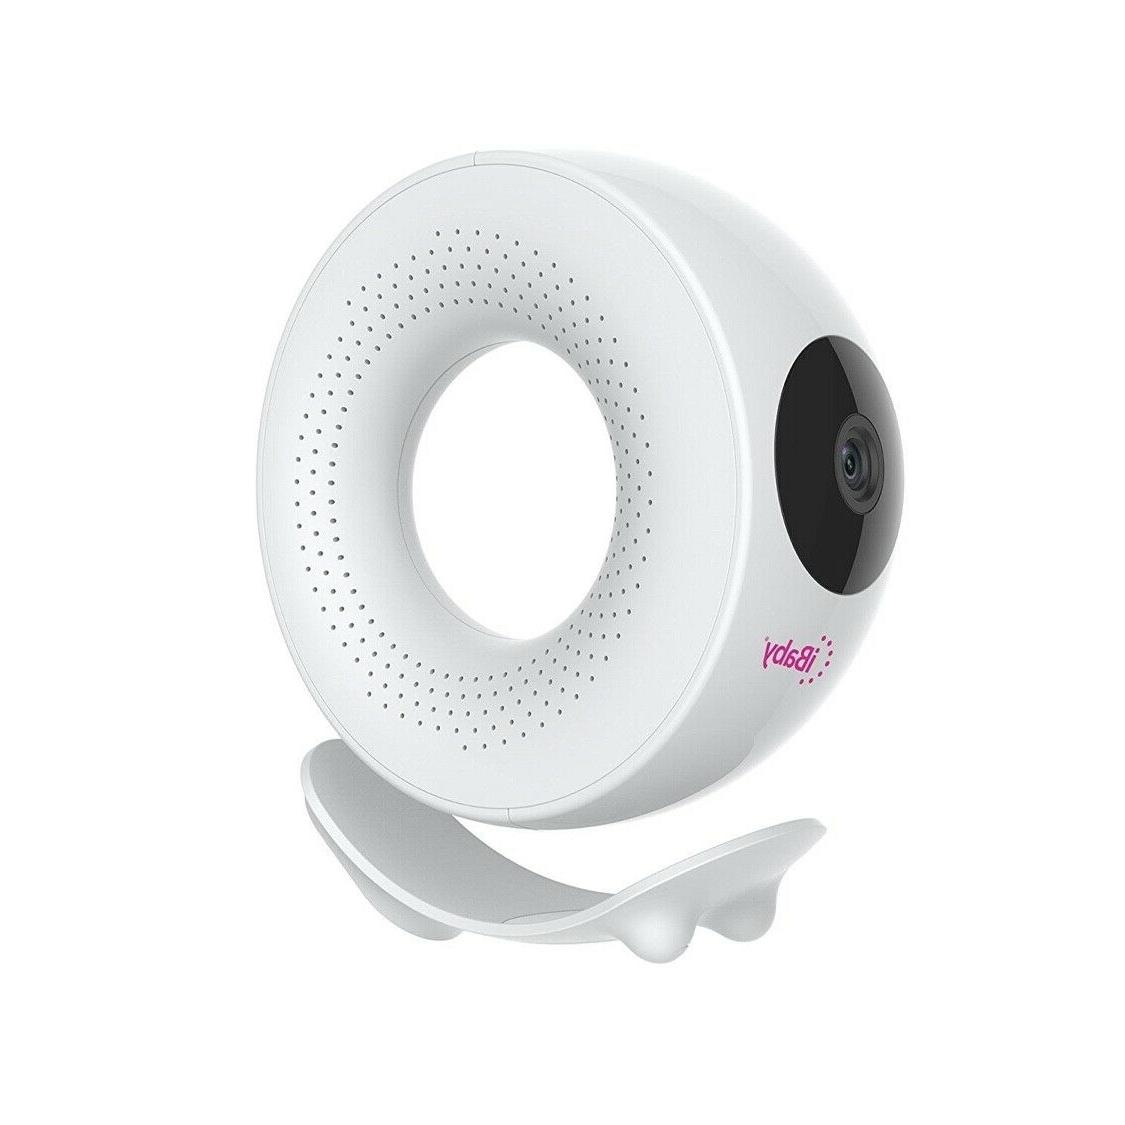 iBaby M2S 1080p Wi-Fi Digital Video Baby with